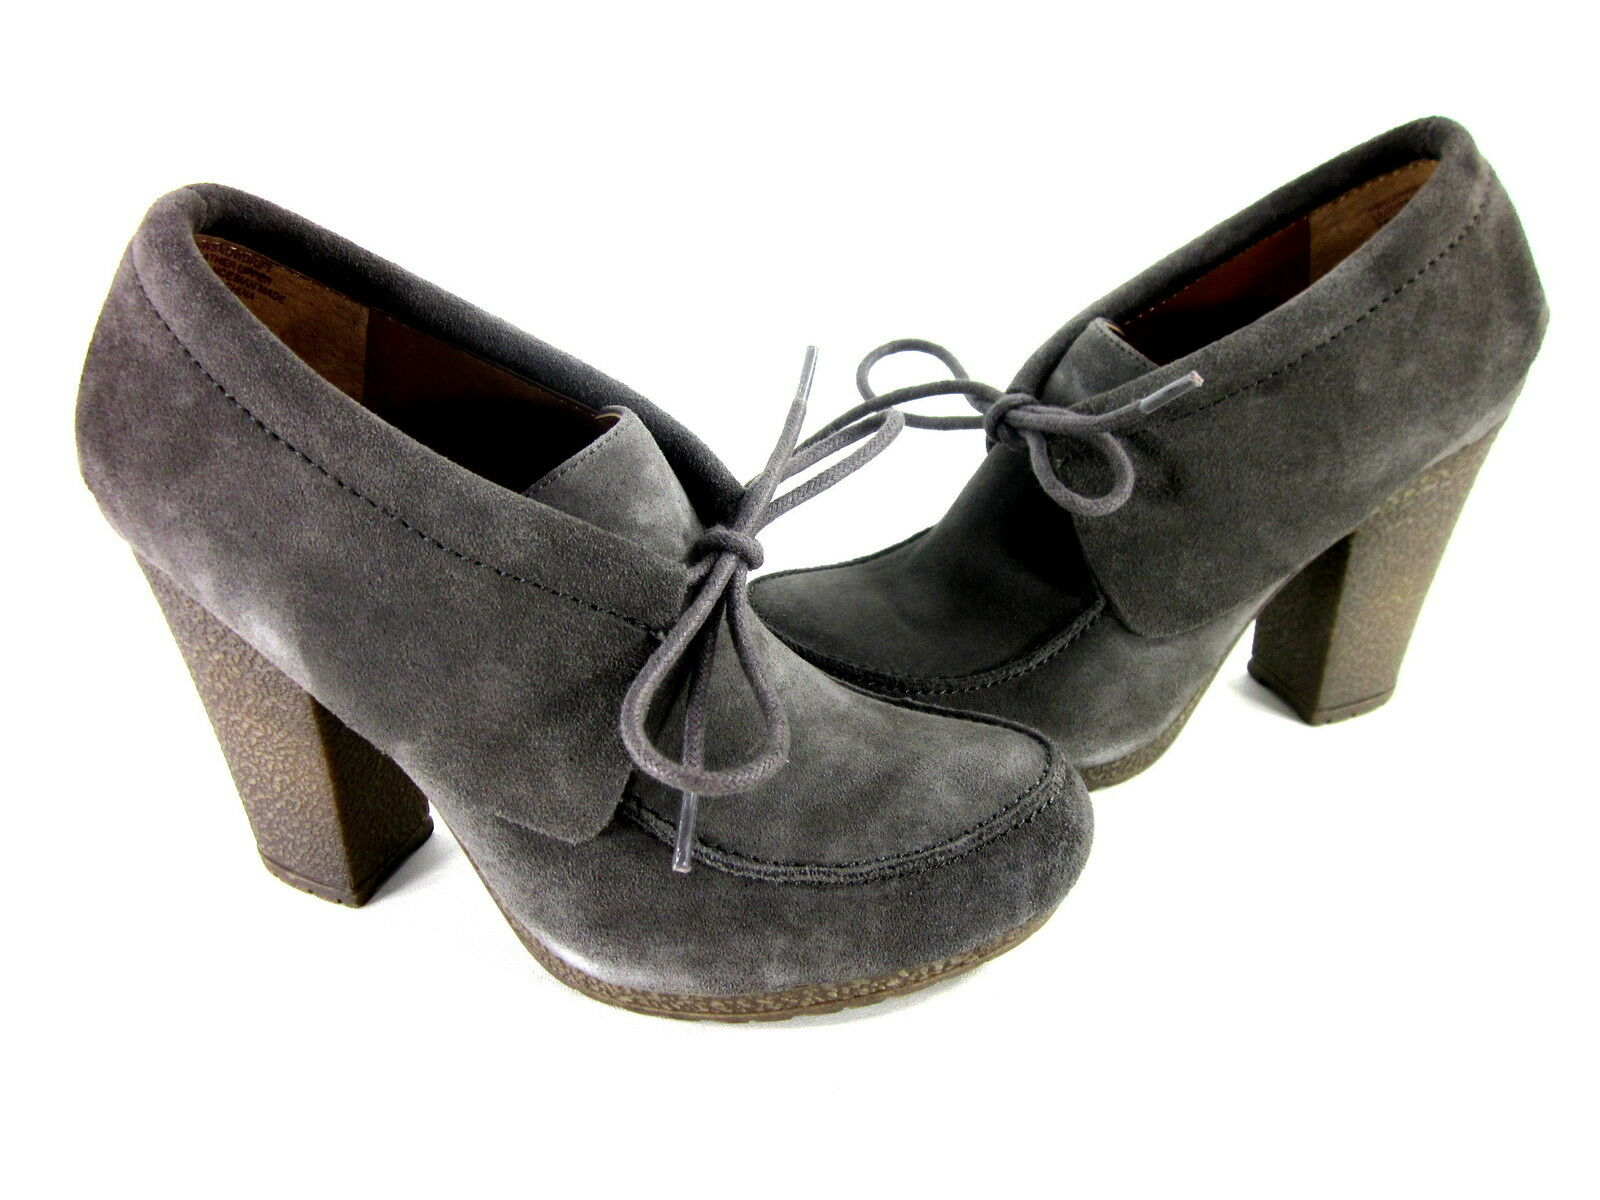 NINE WEST WOMEN'S SNOWDRIFT FASHION OXFORDS GREY SUEDE FASHION HEEL US SZ 5.5 M